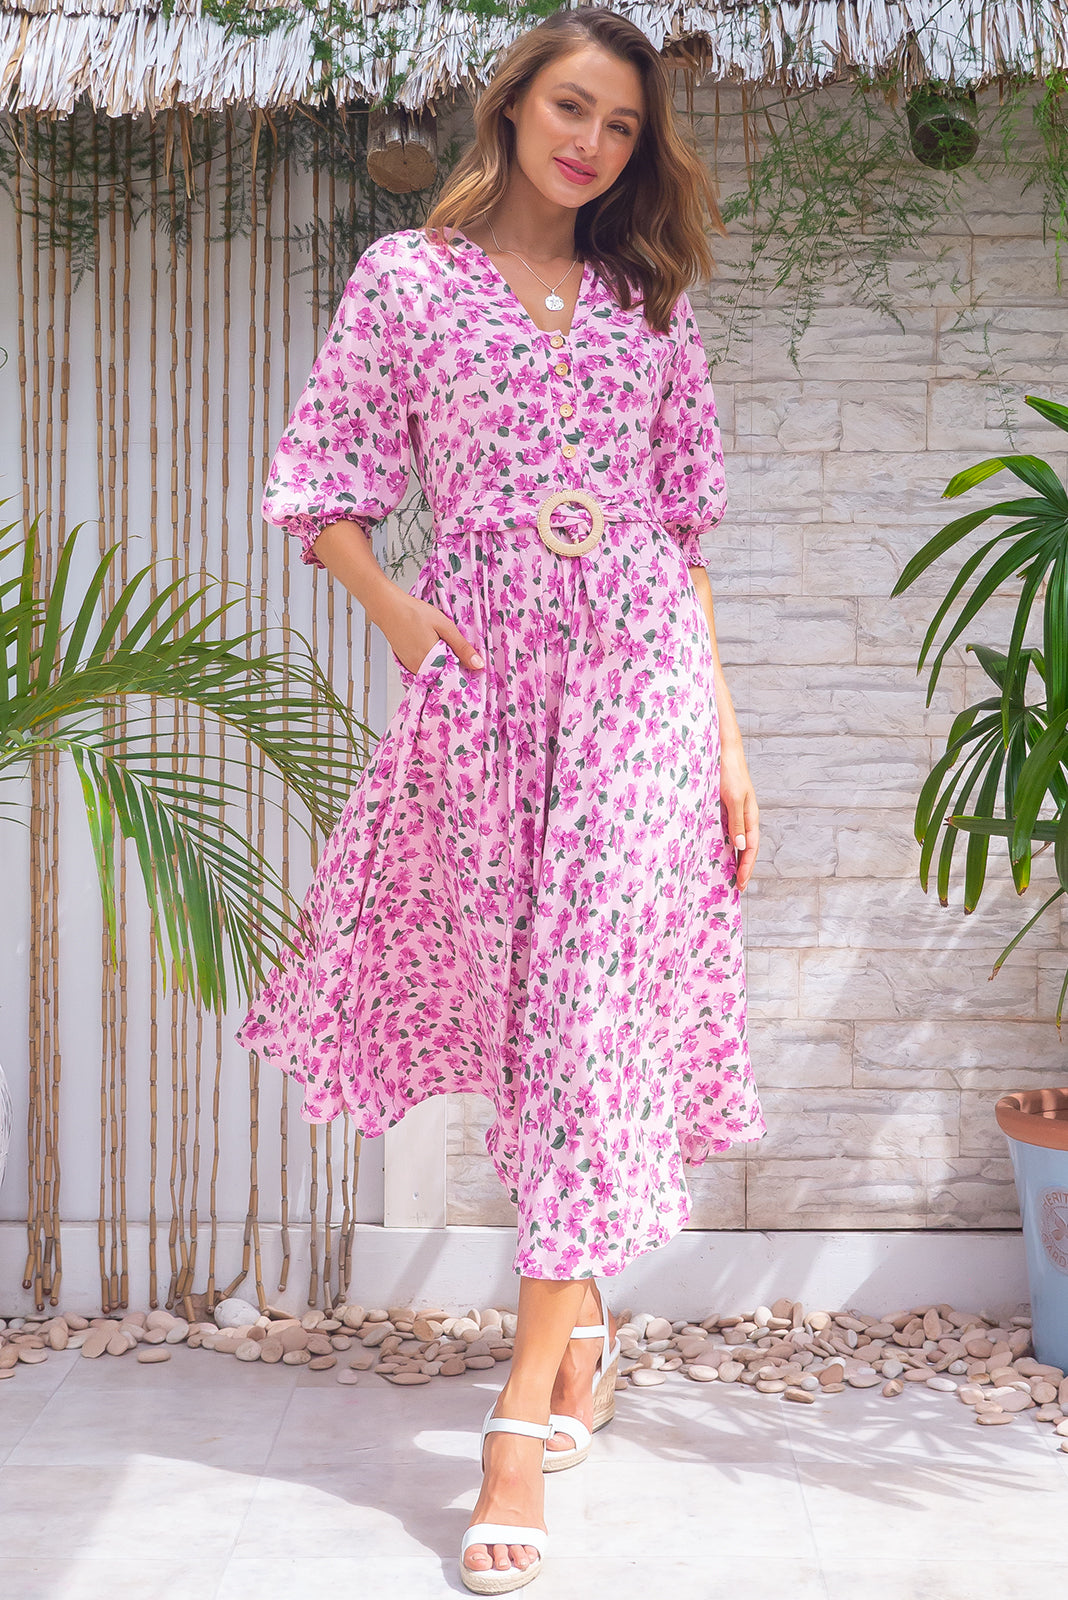 Primrose In he Pink Dress features V neckline, functional buttons from bust to waist, elasticated back waistband, 3/4 sleeve with shirring cuffs, side pockets and 100% rayon in pink base with mauve floral print.